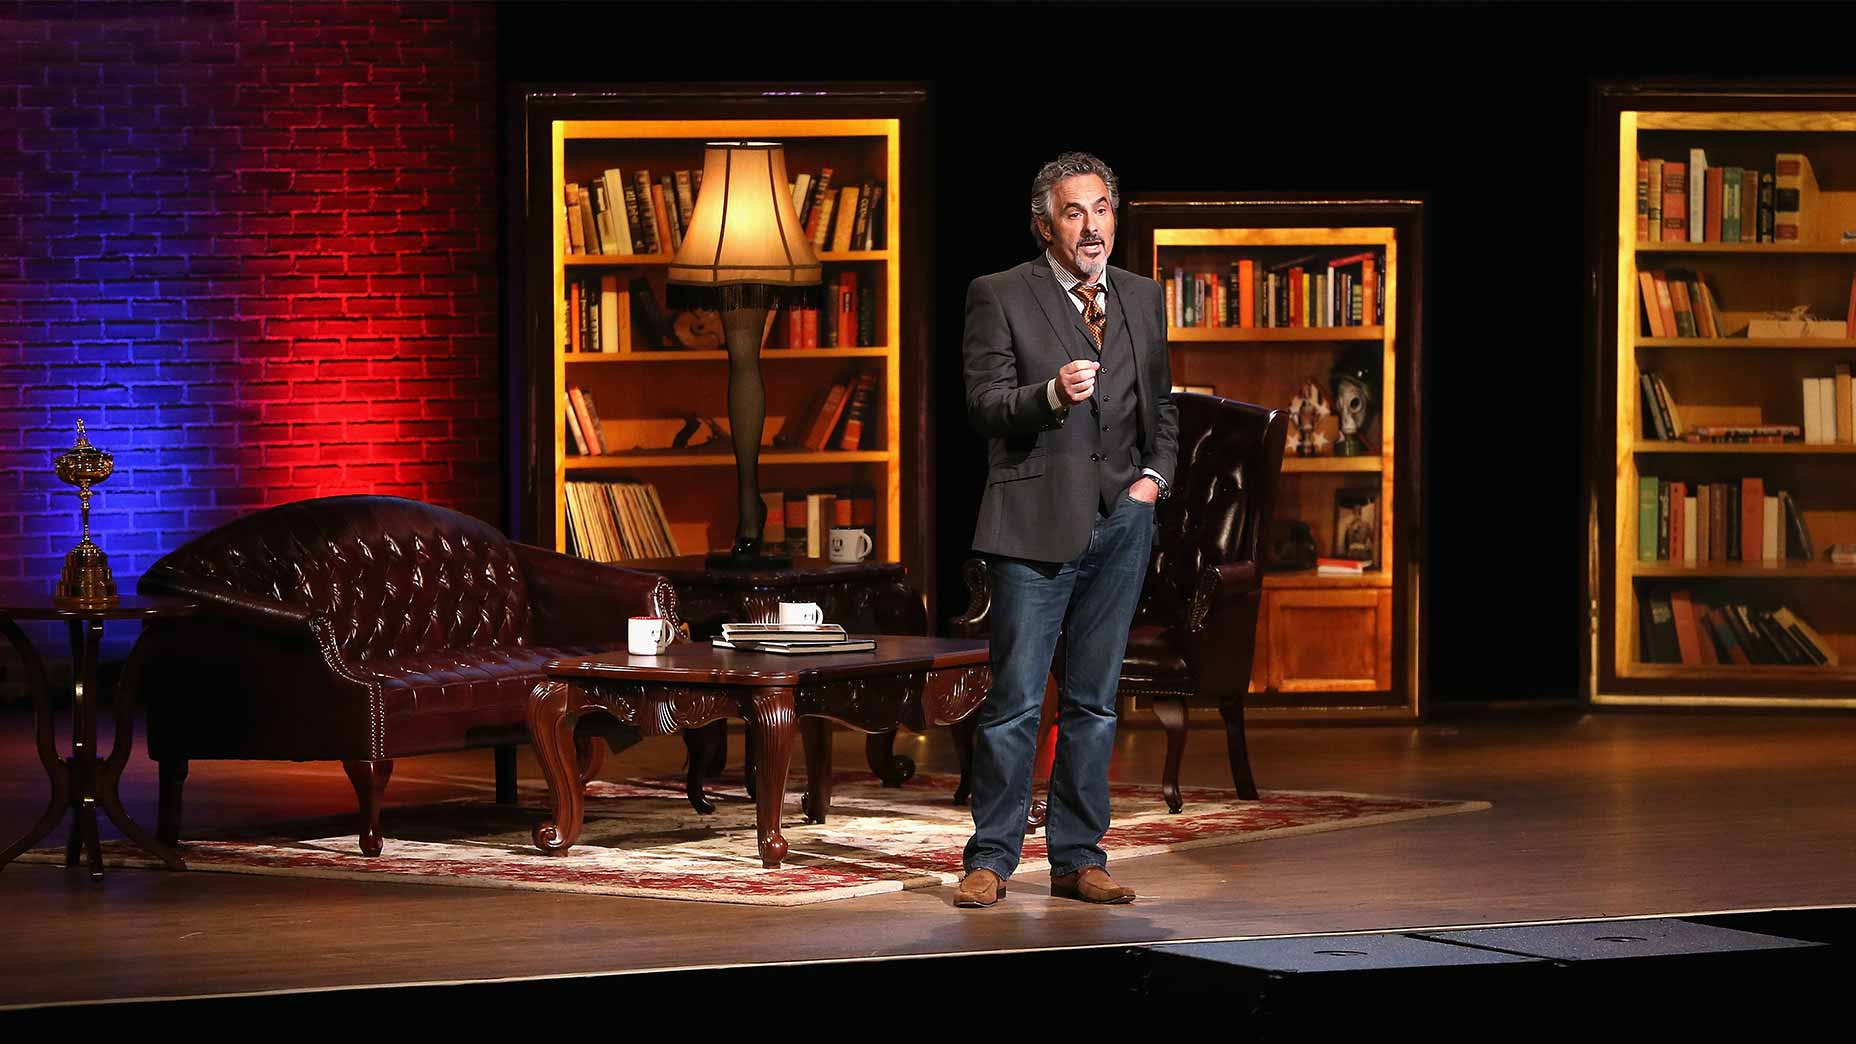 david feherty talks on stage